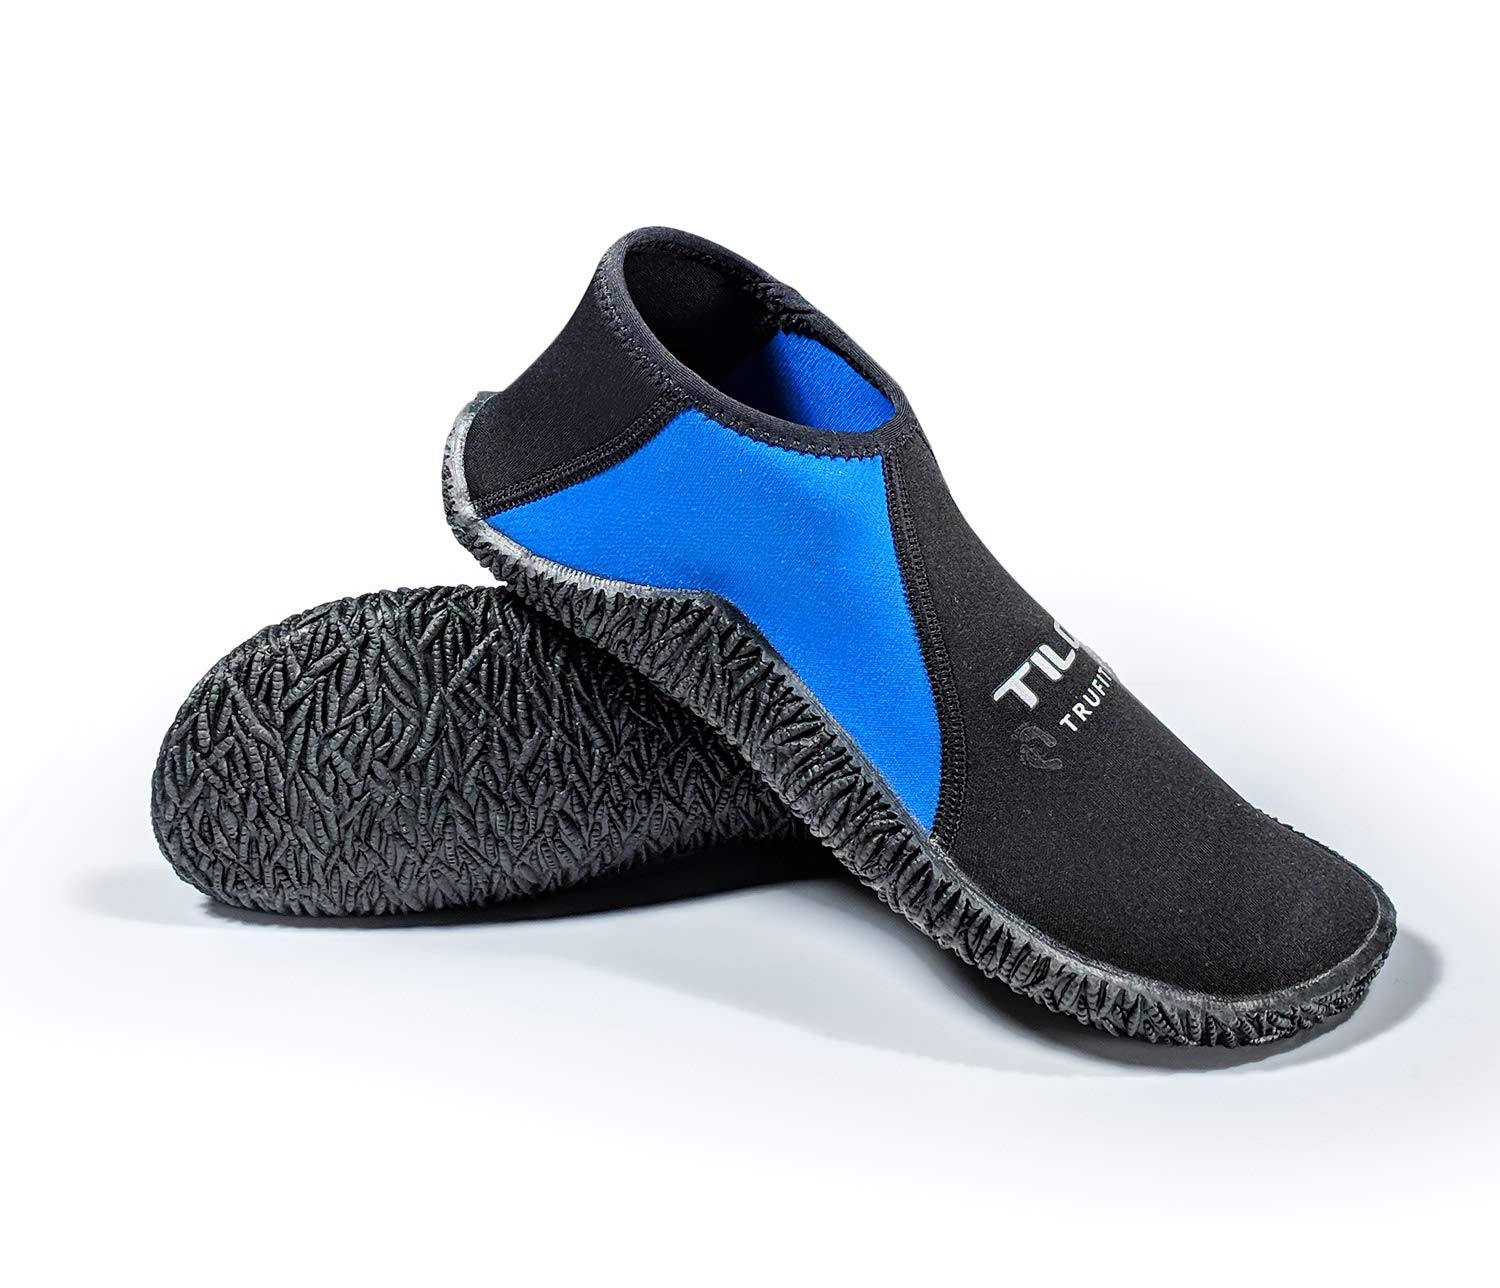 Water Sports Divers Pacifica Fins Size 5-6 38-39 Snorkel Scuba Full Foot Us Made Orders Are Welcome. Provided U.s